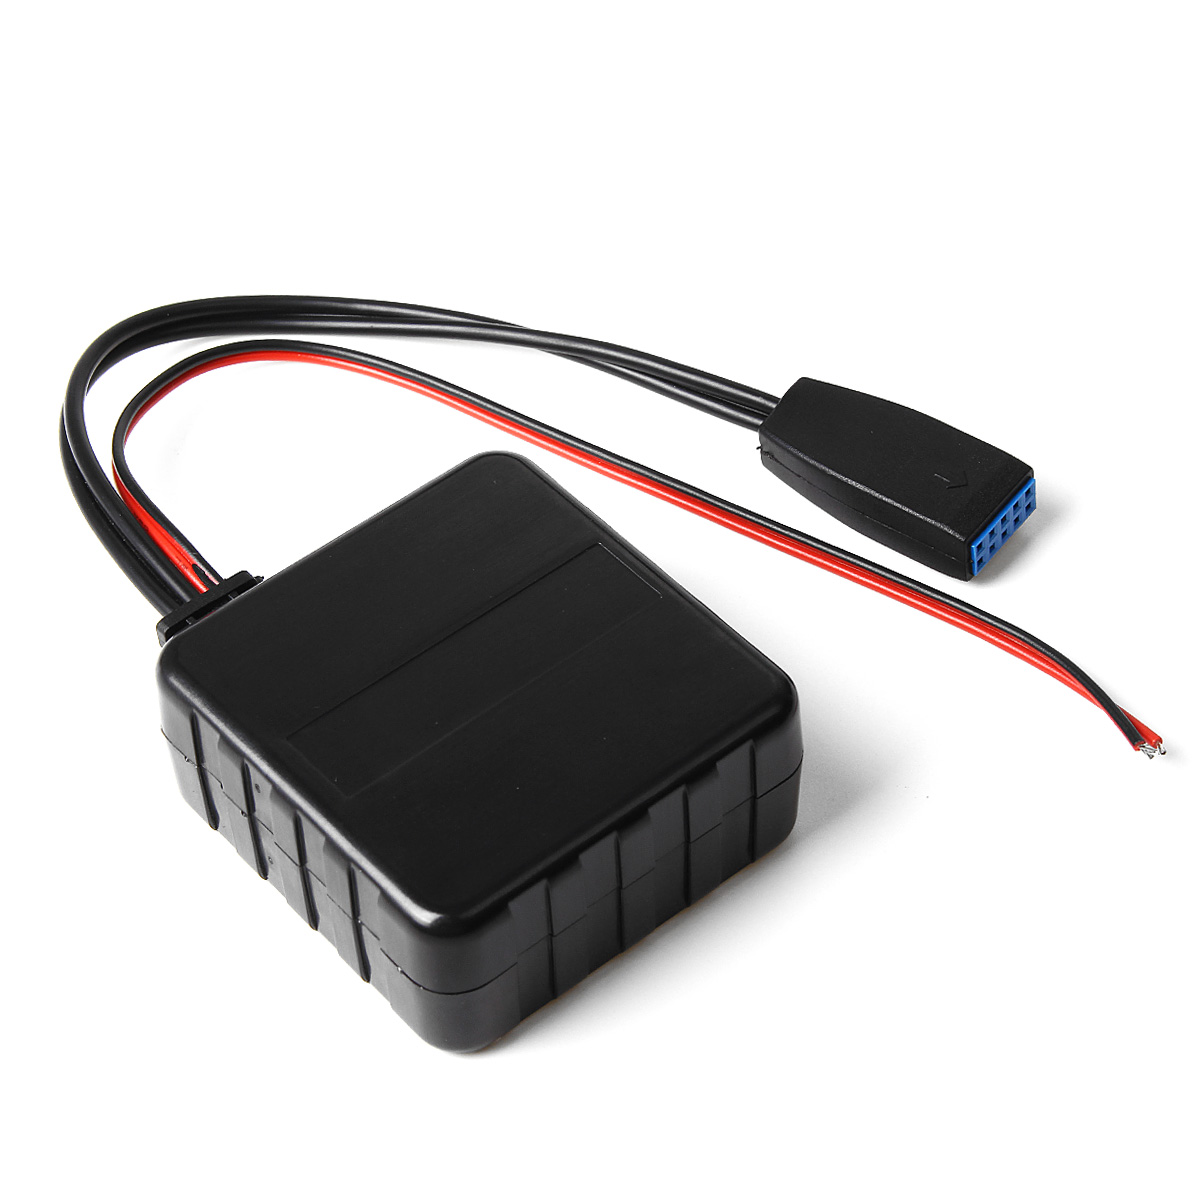 Wireless HIFI <font><b>12V</b></font> Car <font><b>bluetooth</b></font> Module <font><b>AUX</b></font> Cable <font><b>Adapter</b></font> Stereo Audio Music Radio For BMW E46 3 SERIES 320i 320ci 320cic image